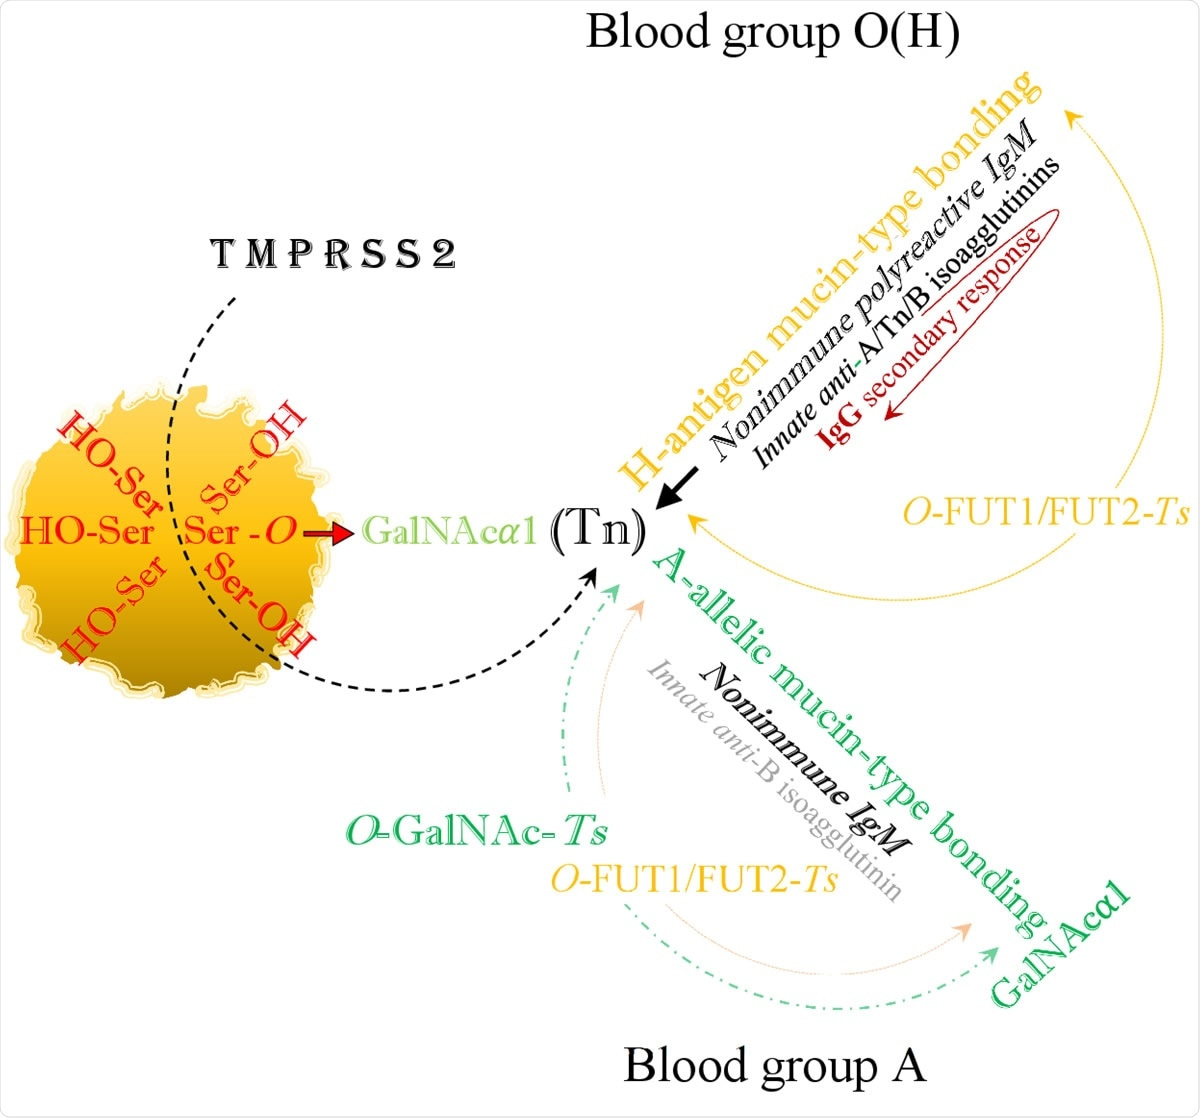 The viral SARS-CoV-2 serine residues, mobilized by host's TMPRSS2, highjack the host's GalNAc metabolism and both blood group O(H) and blood group A are identically infected via blood group independent, trans-species intermediate O-GalNAc-Ser (Tn) glycosylation.